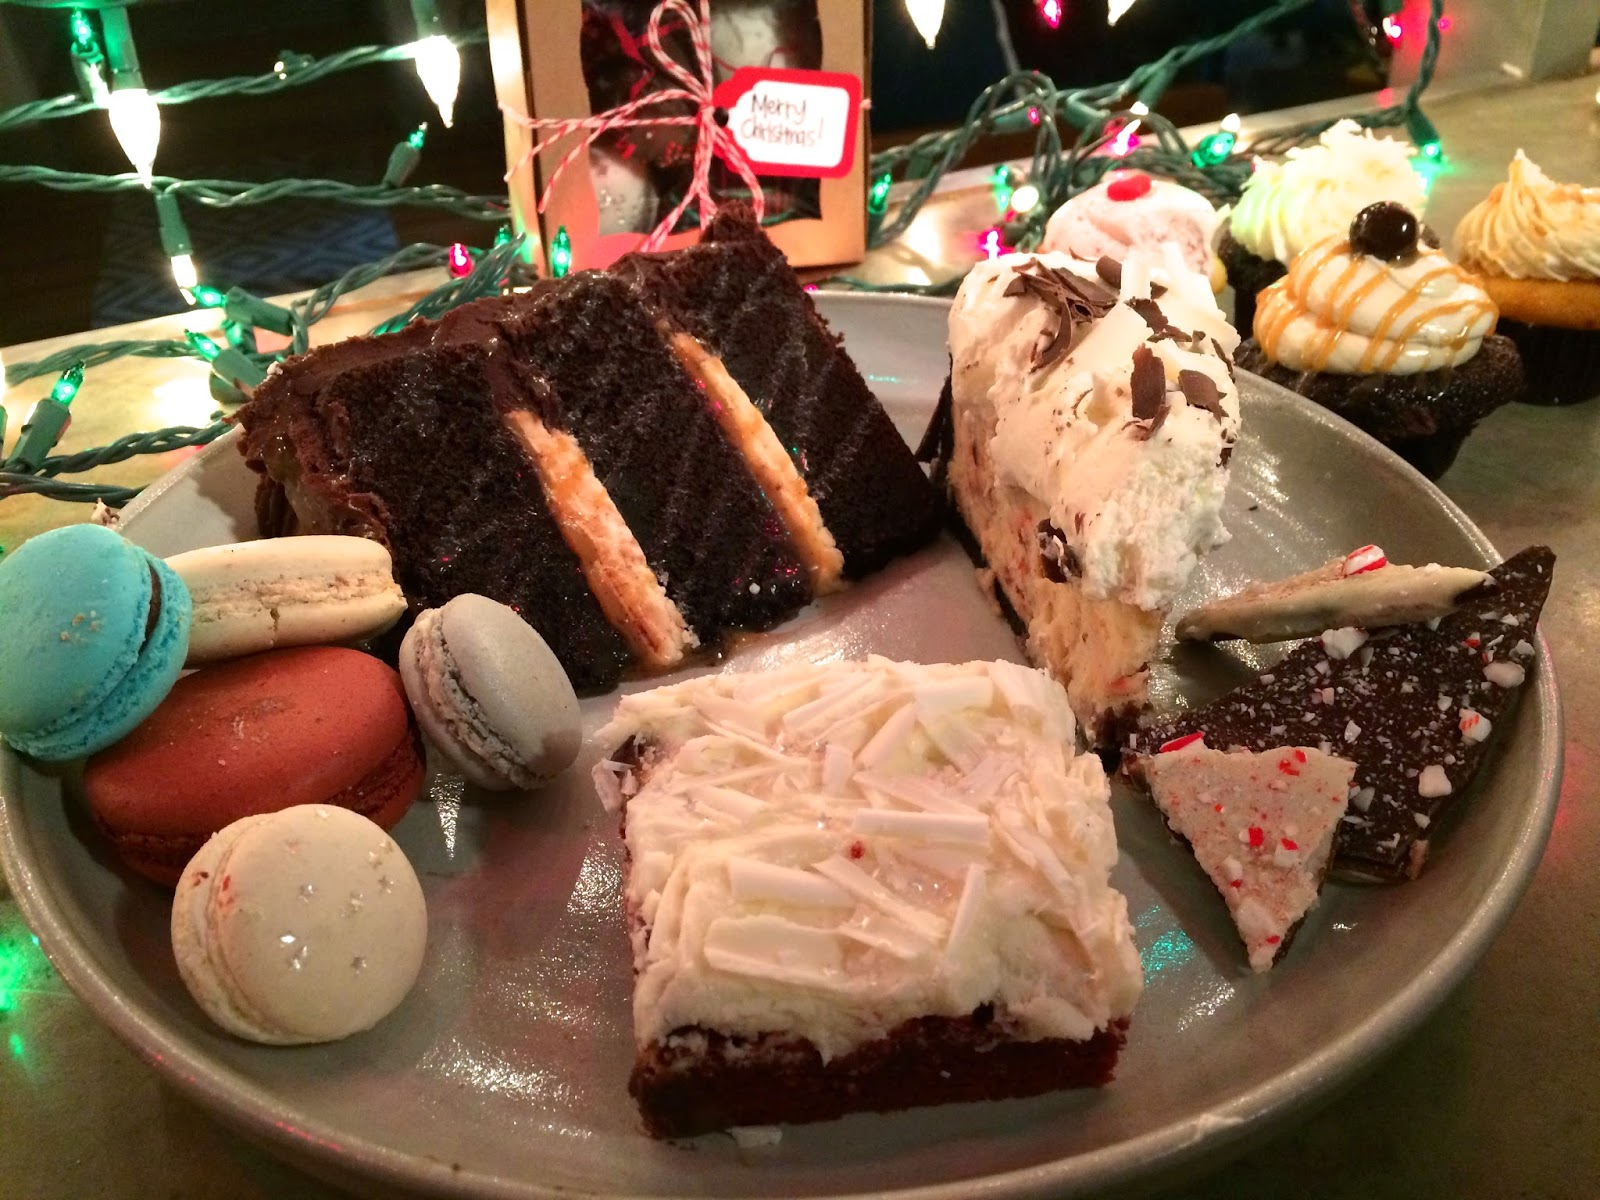 The smorgasbord of sugar from Les Amis Bake Shoppe